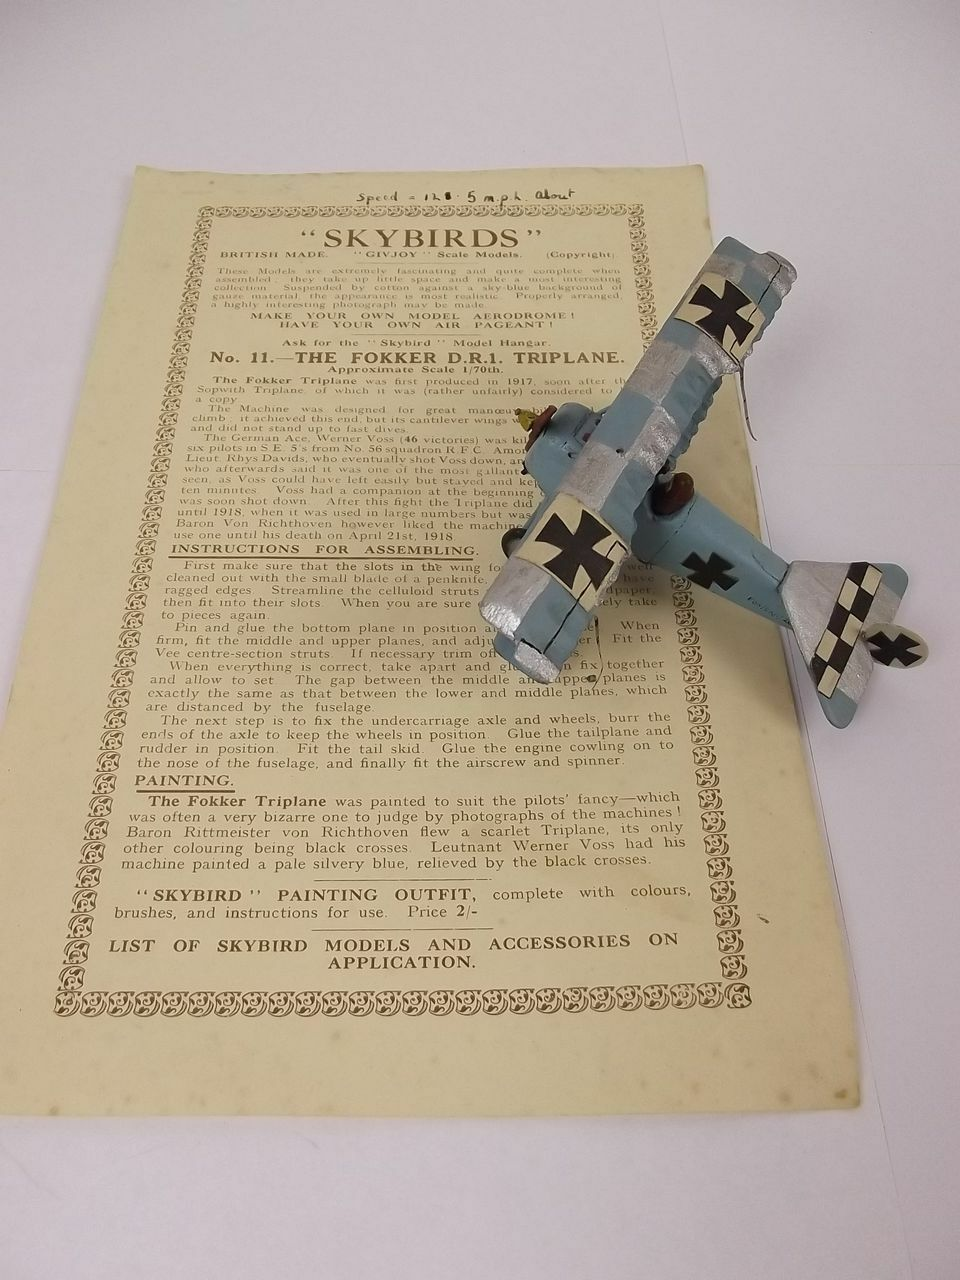 Givejoy Toys Skybirds 1 72nd Scale Aircraft Fokker D.R.1 Triplane In bluee